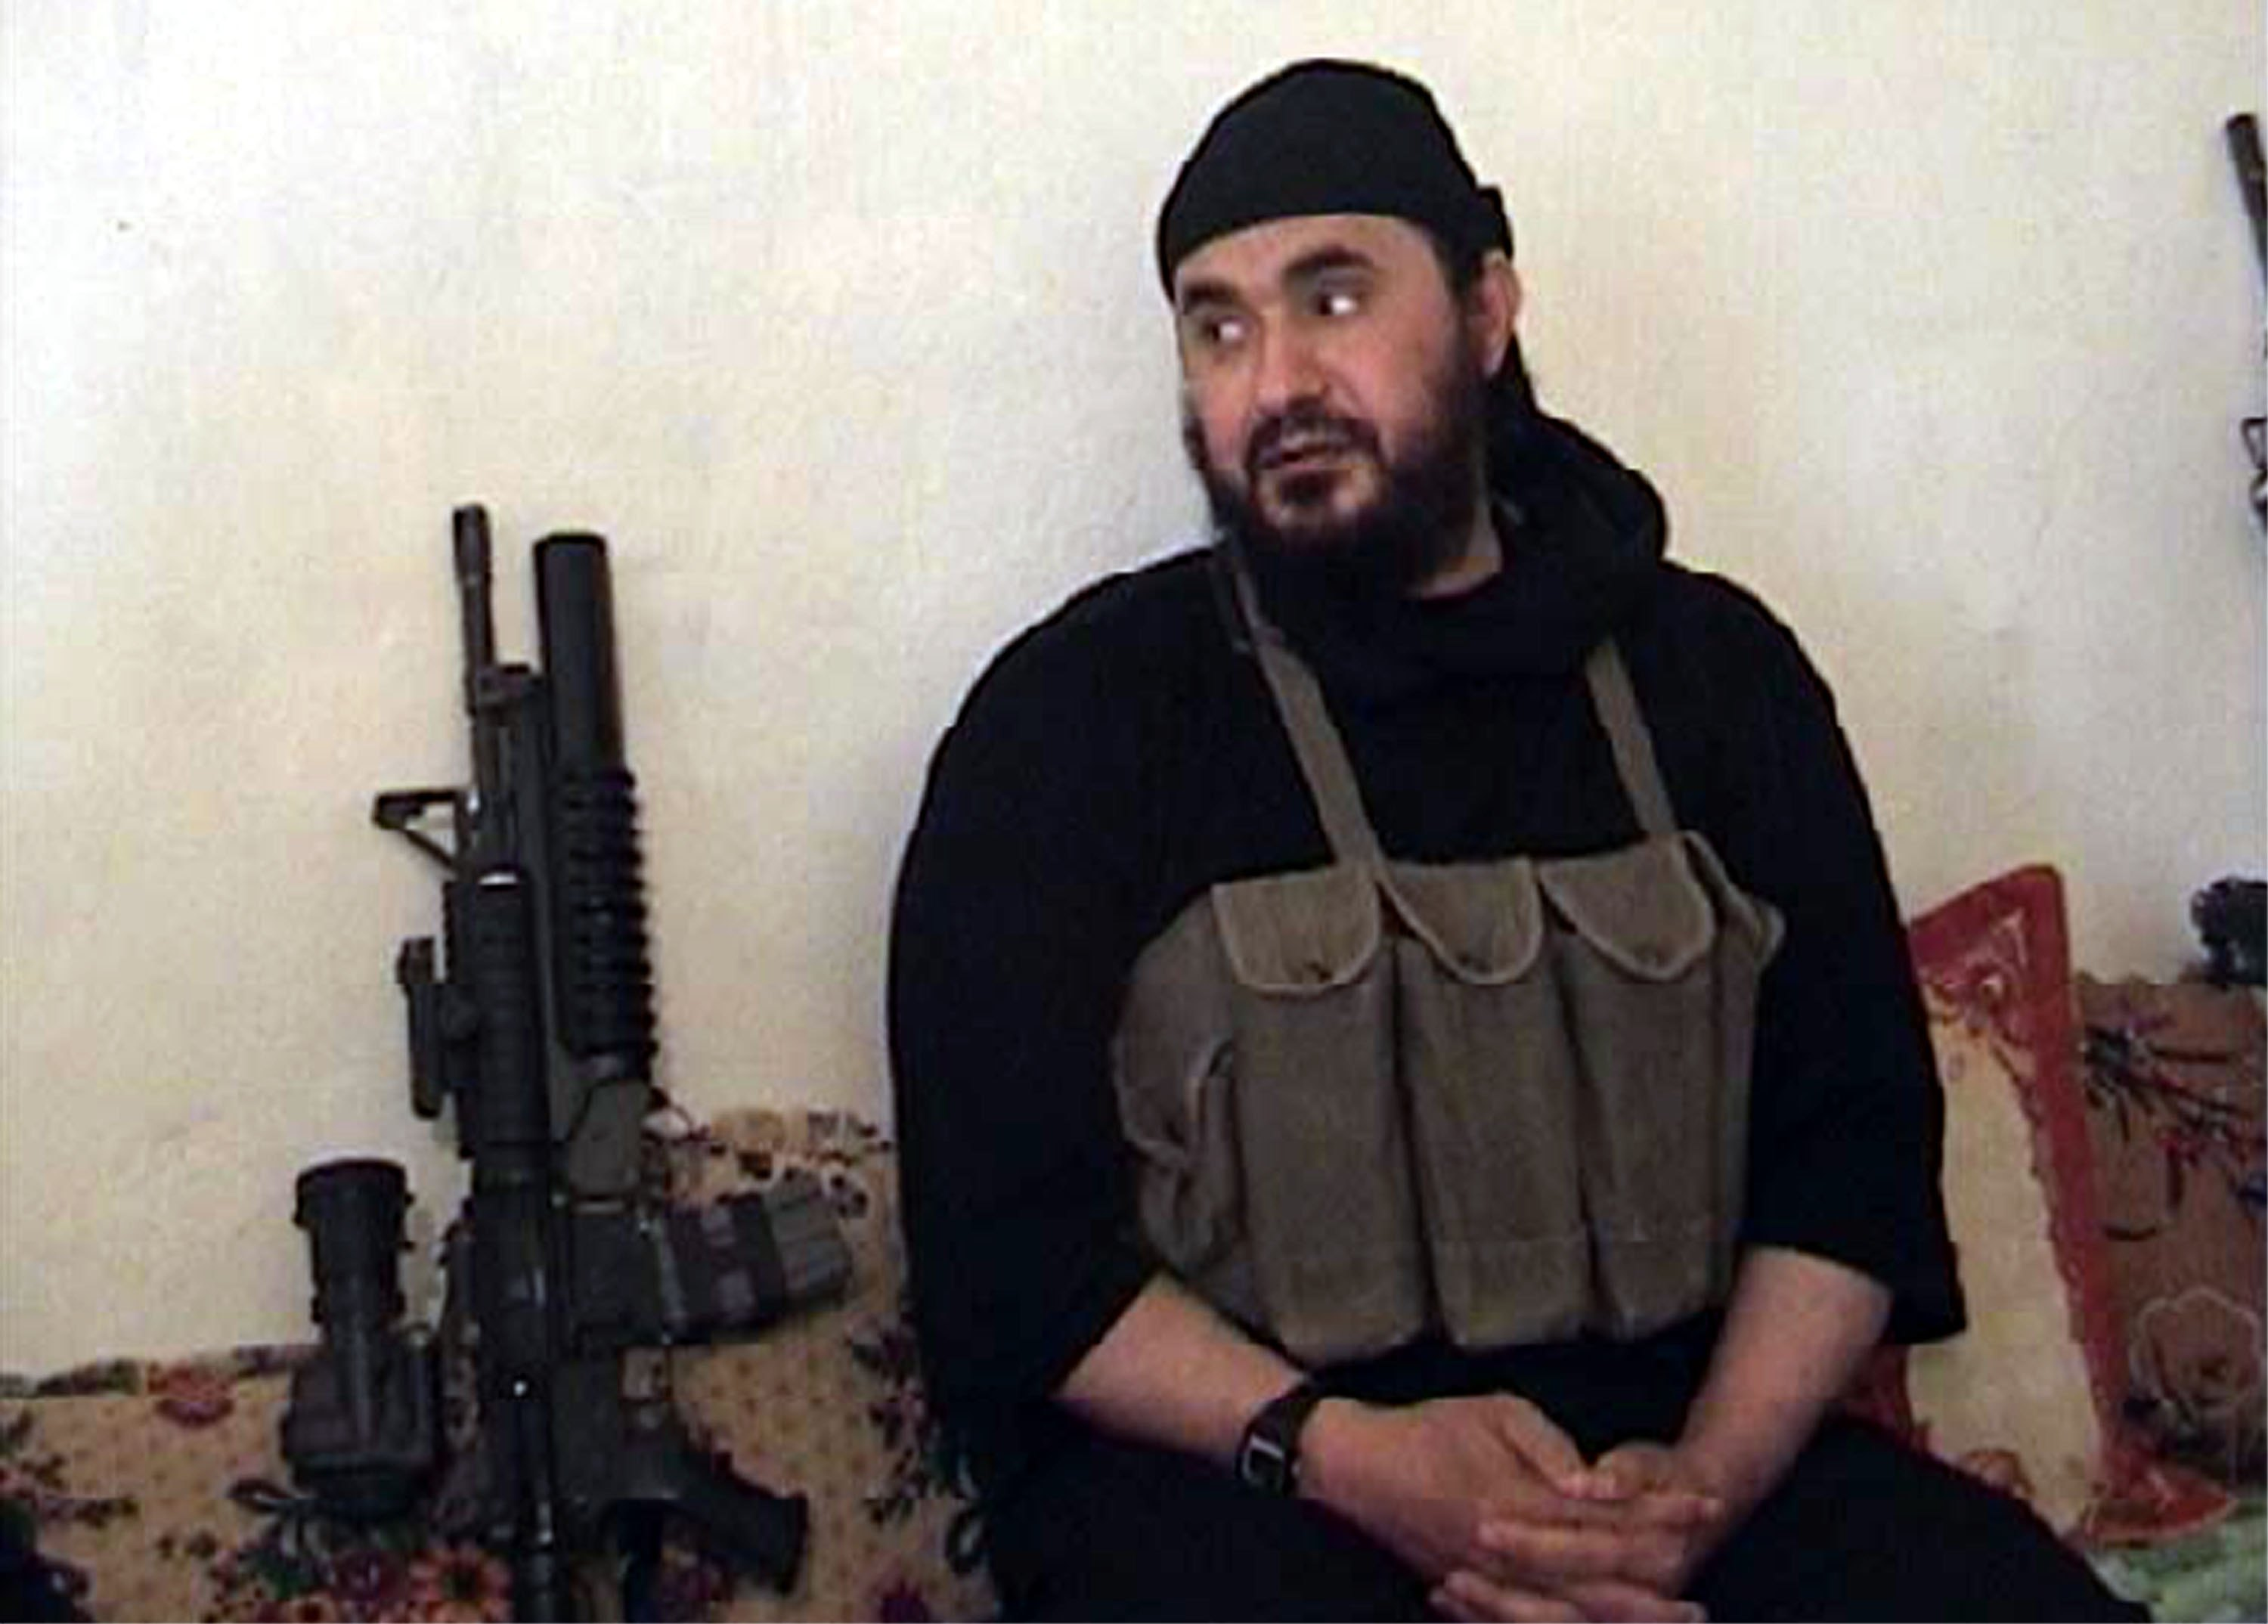 <b>$25 million: Abu Mus'ab al-Zarqawi (removed)</b>                                   Abu Mus'ab al-Zarqawi was the leader of al-Qaeda in Iraq, and was responsible for numerous hostage executions and suicide bombings, including the first major attack in 2003 that destroyed the U.N. headquarters in Baghdad. Al-Zarqawi was killed in an American airstrike near Baghdad in 2006.